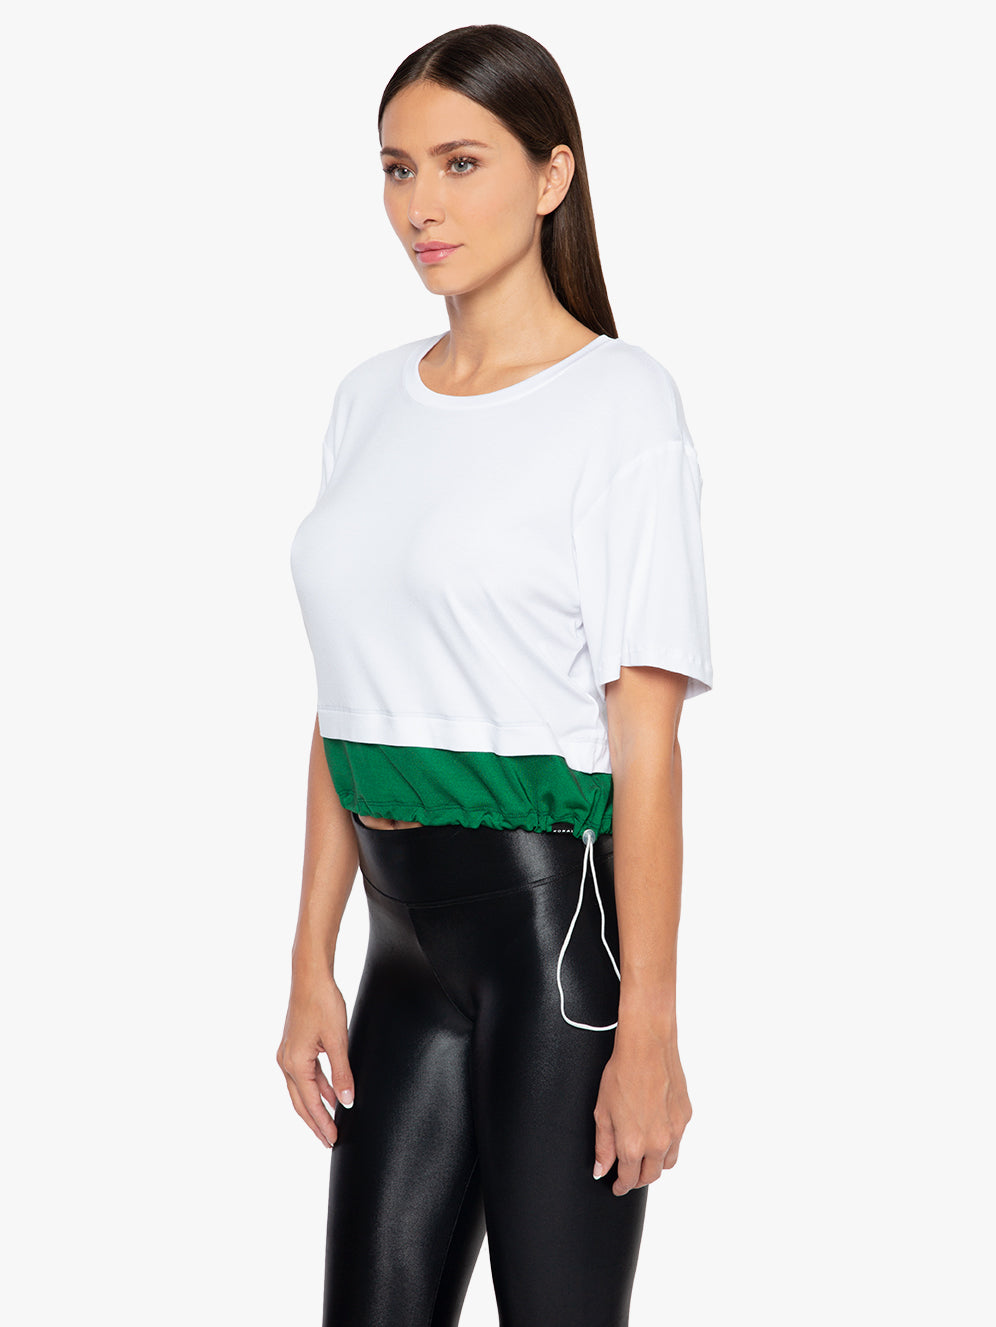 Bora Brisa Crop T-Shirt - White/Dark Green